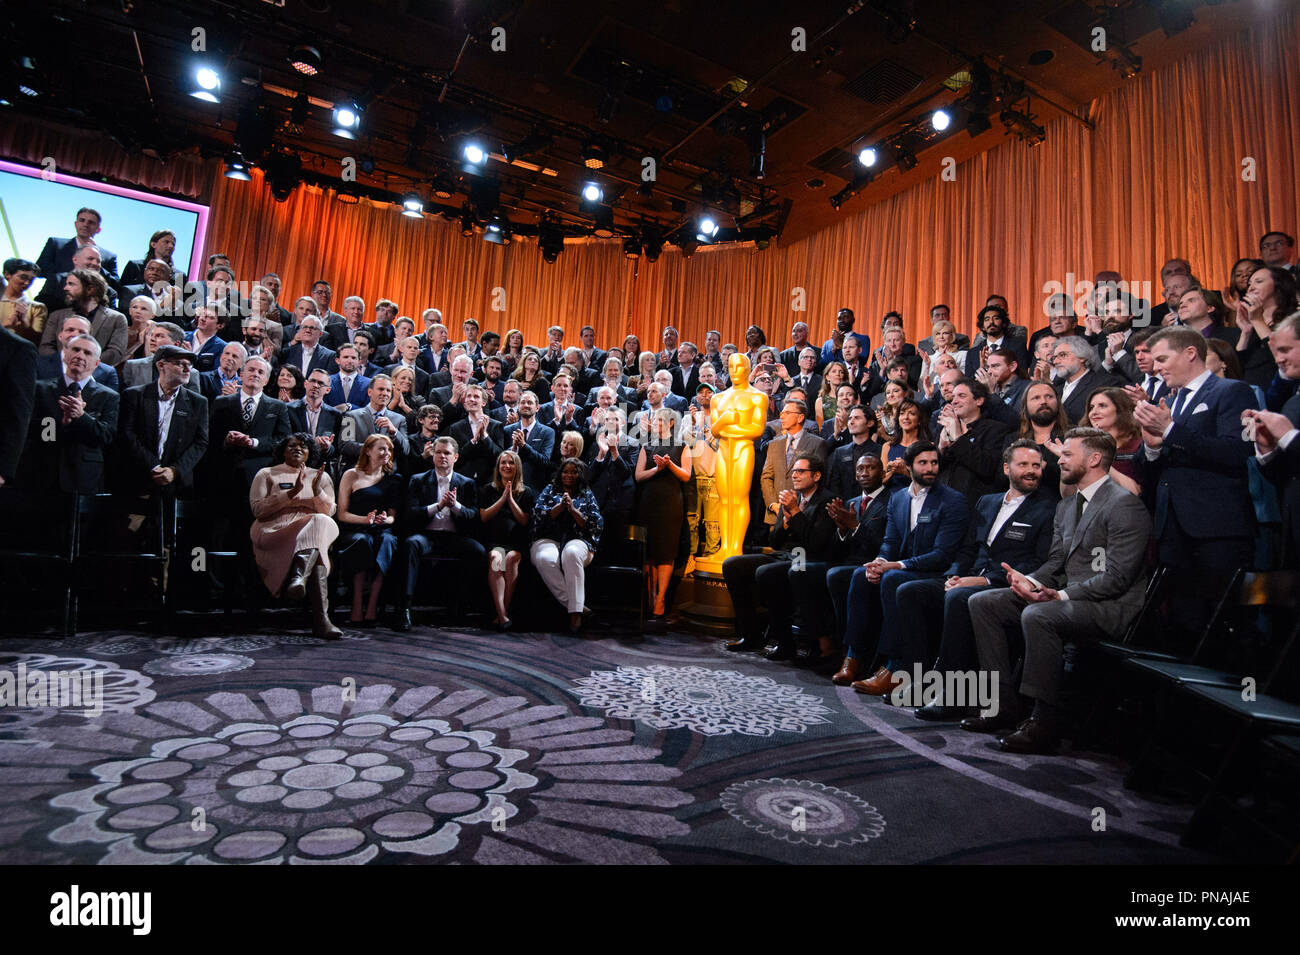 The Oscar® Nominees Luncheon in Beverly Hills Monday, February 6, 2017. The 89th Oscars® will air on Sunday, February 26, live on ABC.  File Reference # 33227_024THA  For Editorial Use Only -  All Rights Reserved - Stock Image